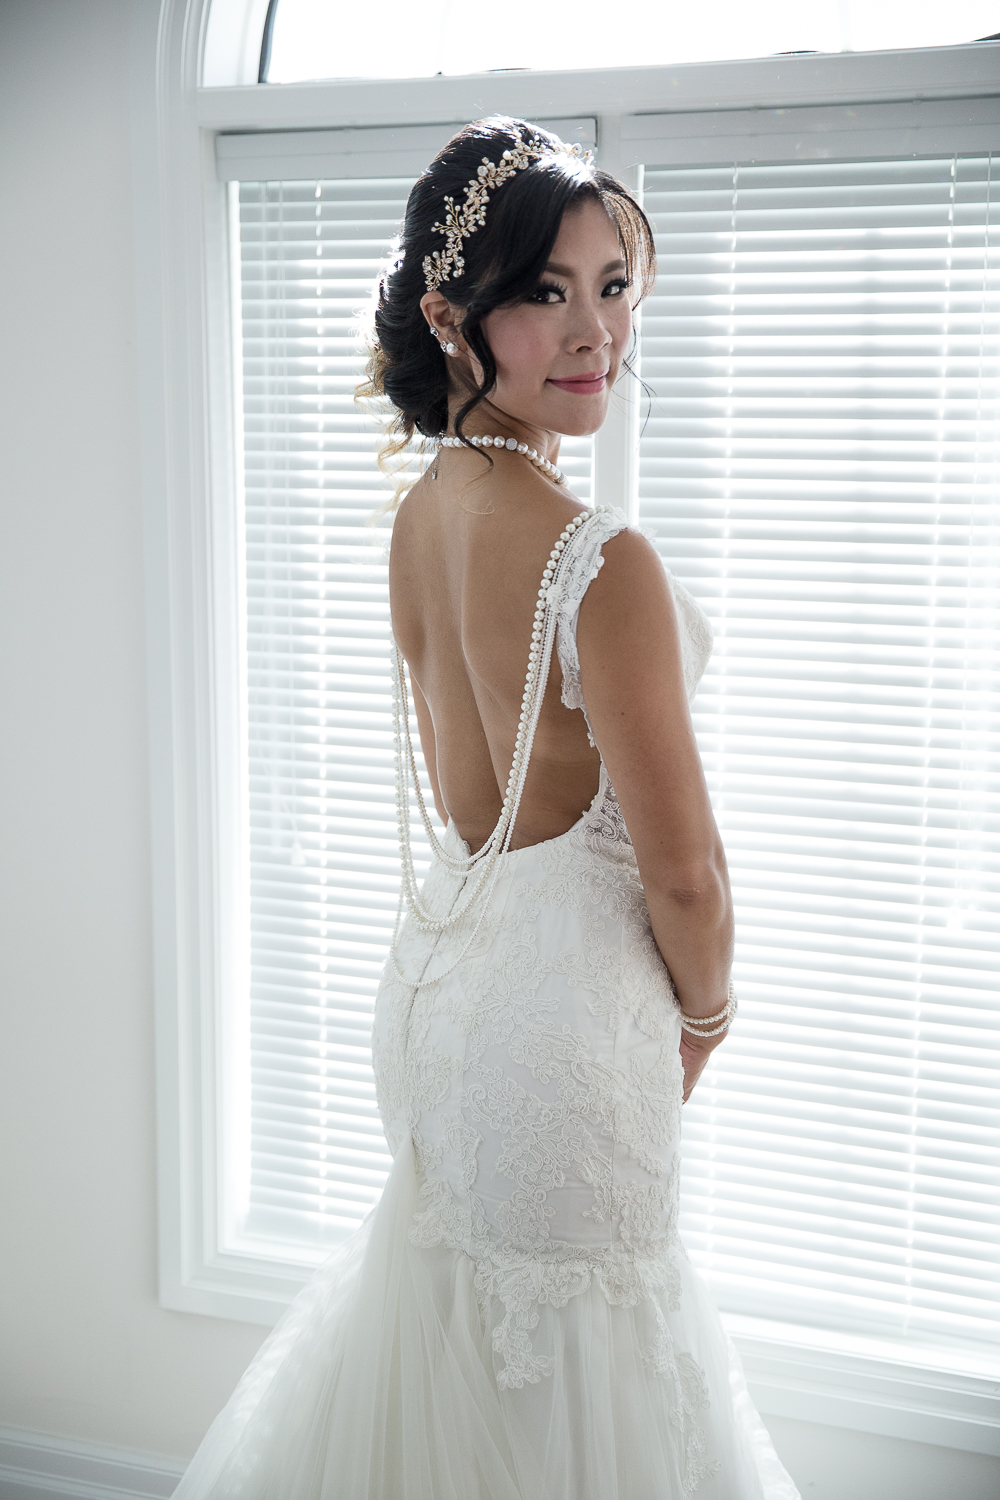 Doug-Karen-Wedding-Derrel-Ho-Shing-Photography-Toronto-Ontatio-0034.jpg